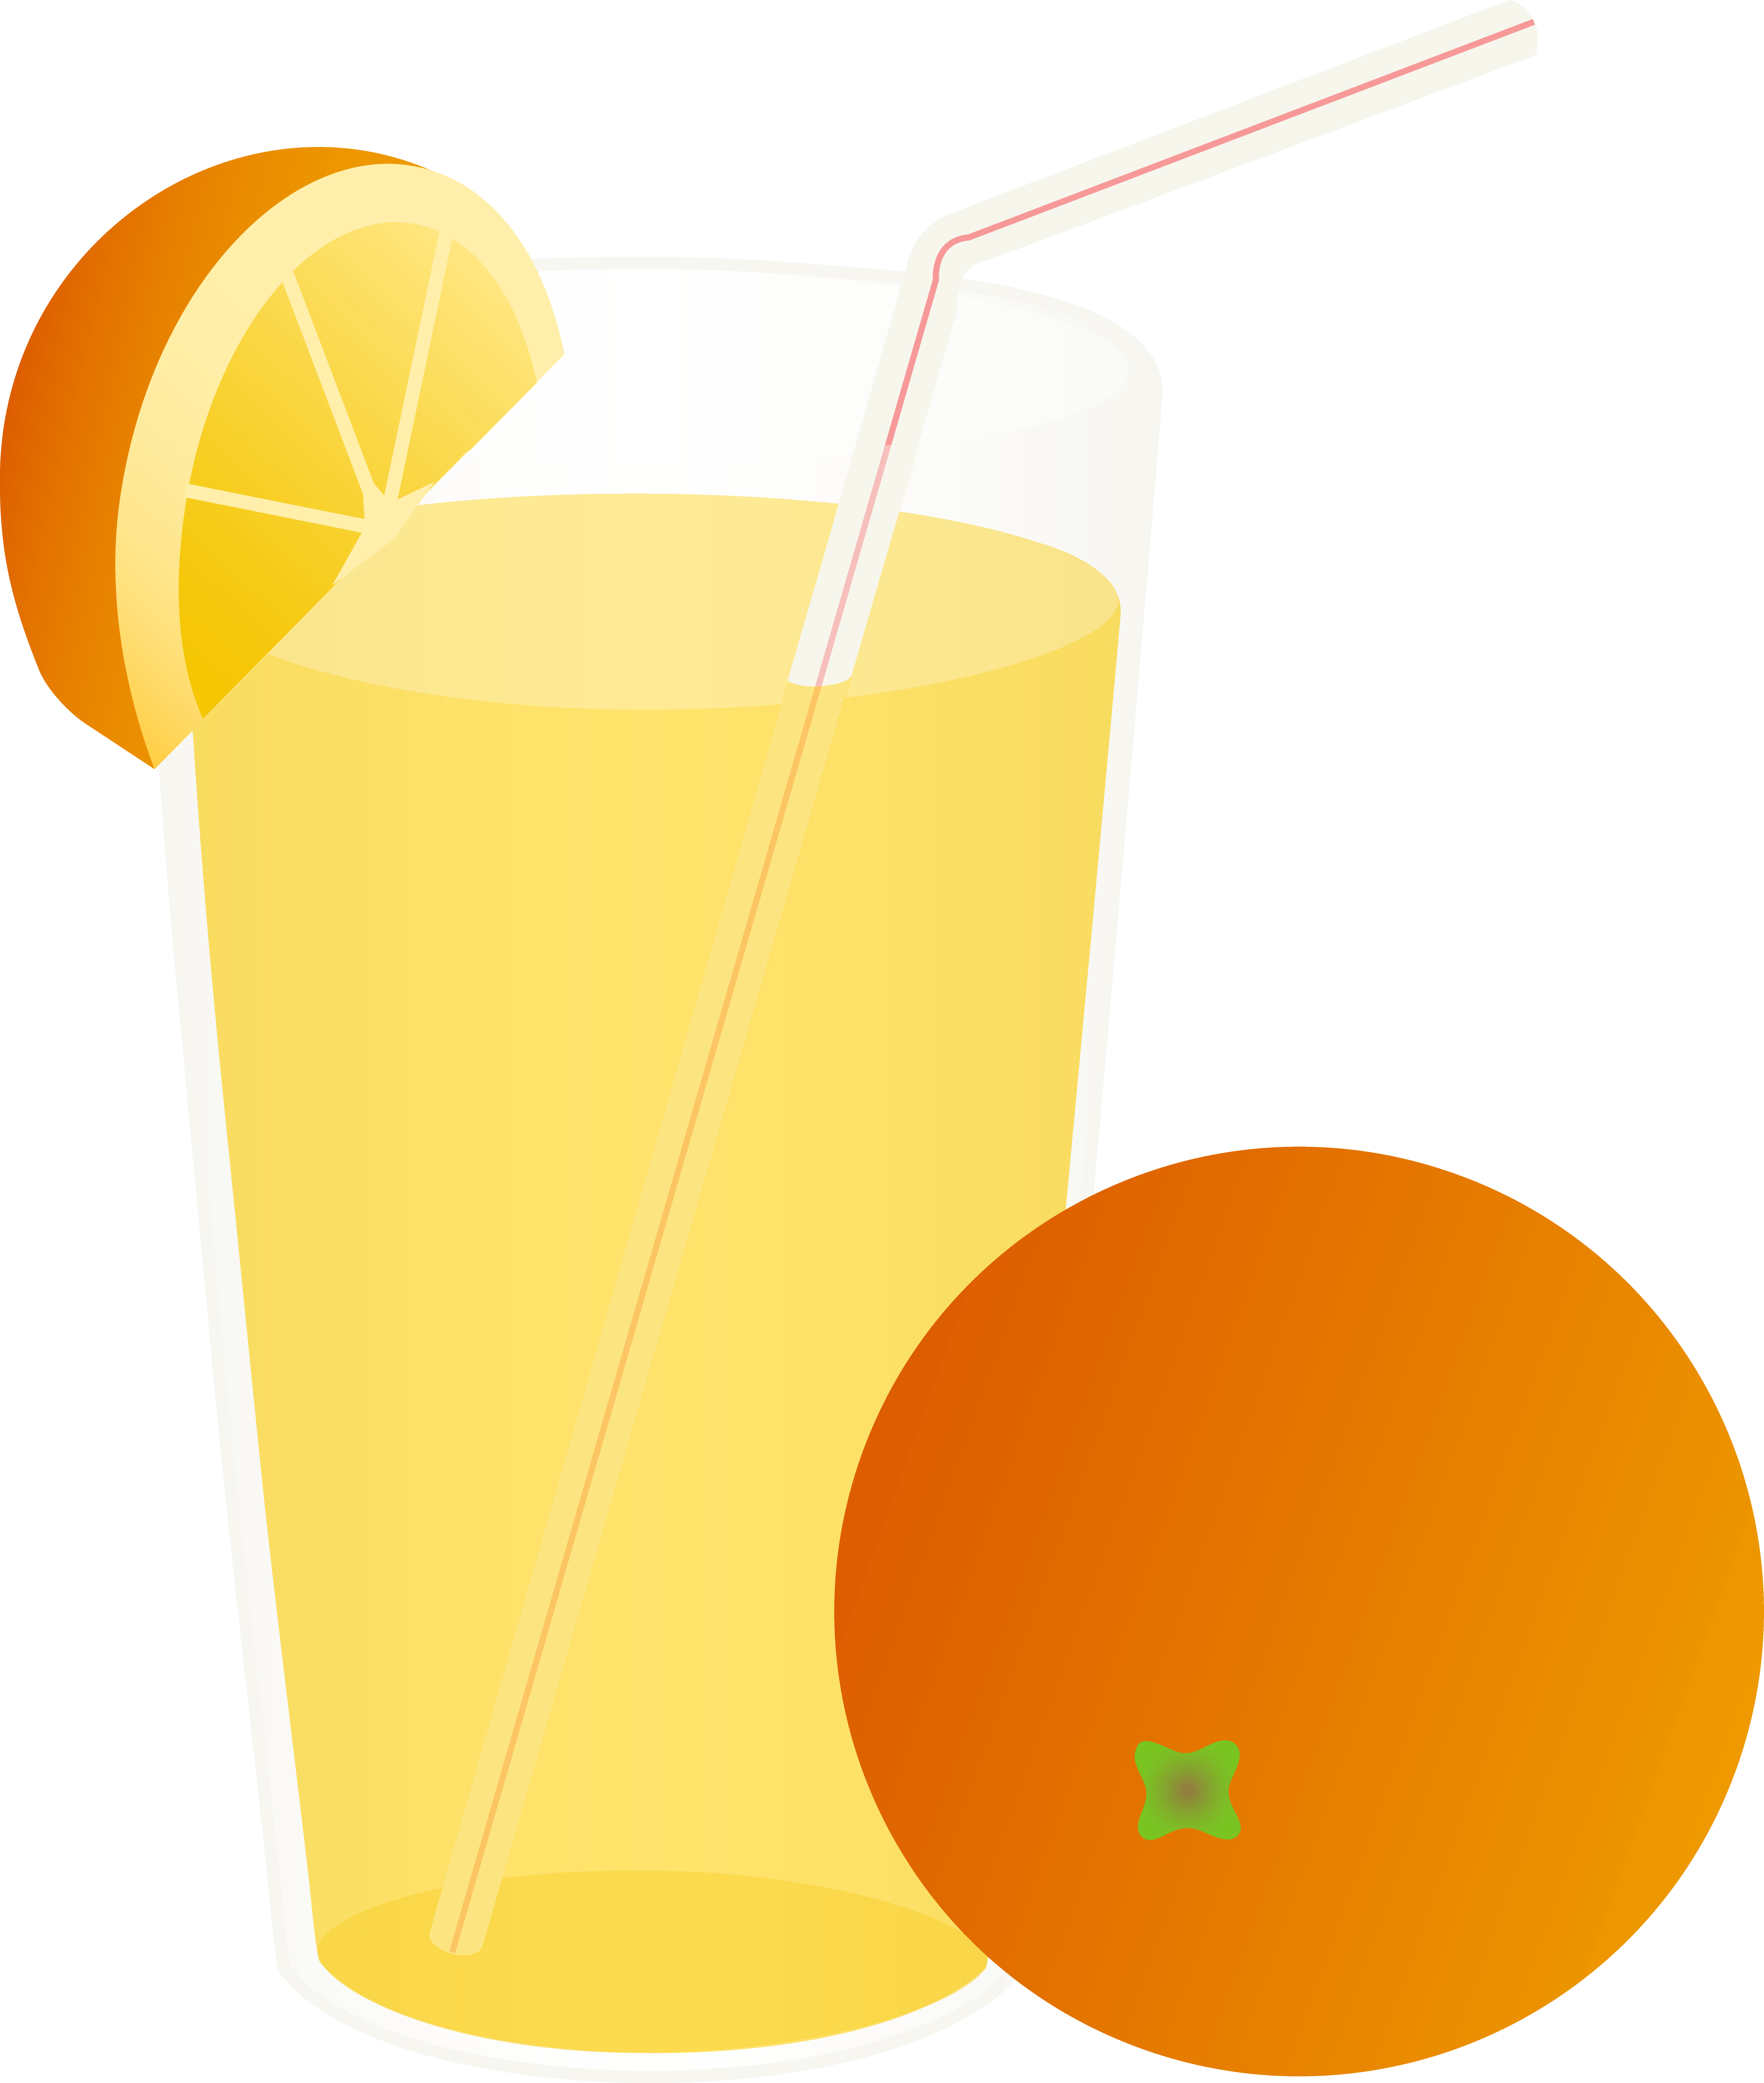 Glass of apple juice clipart jpg Orange Juice Clipart at GetDrawings.com | Free for personal use ... jpg